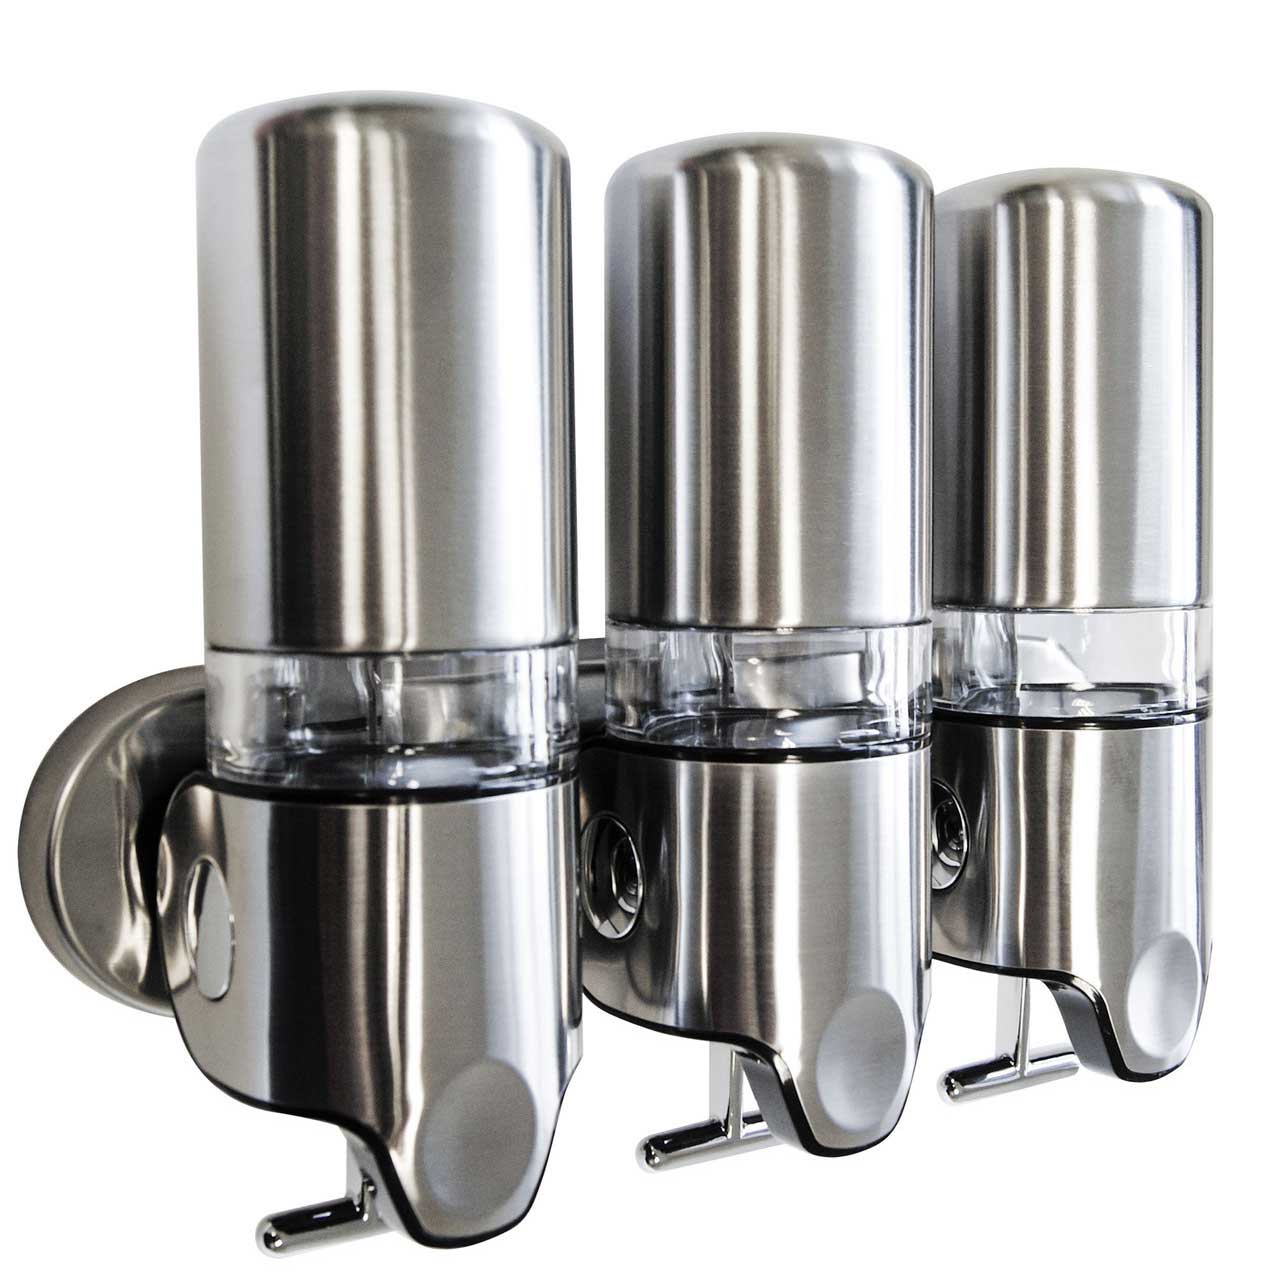 Soap And Shampoo Dispensers For Showers Brushed Stainless Steel Shower Dispenser Brushed Zepfix